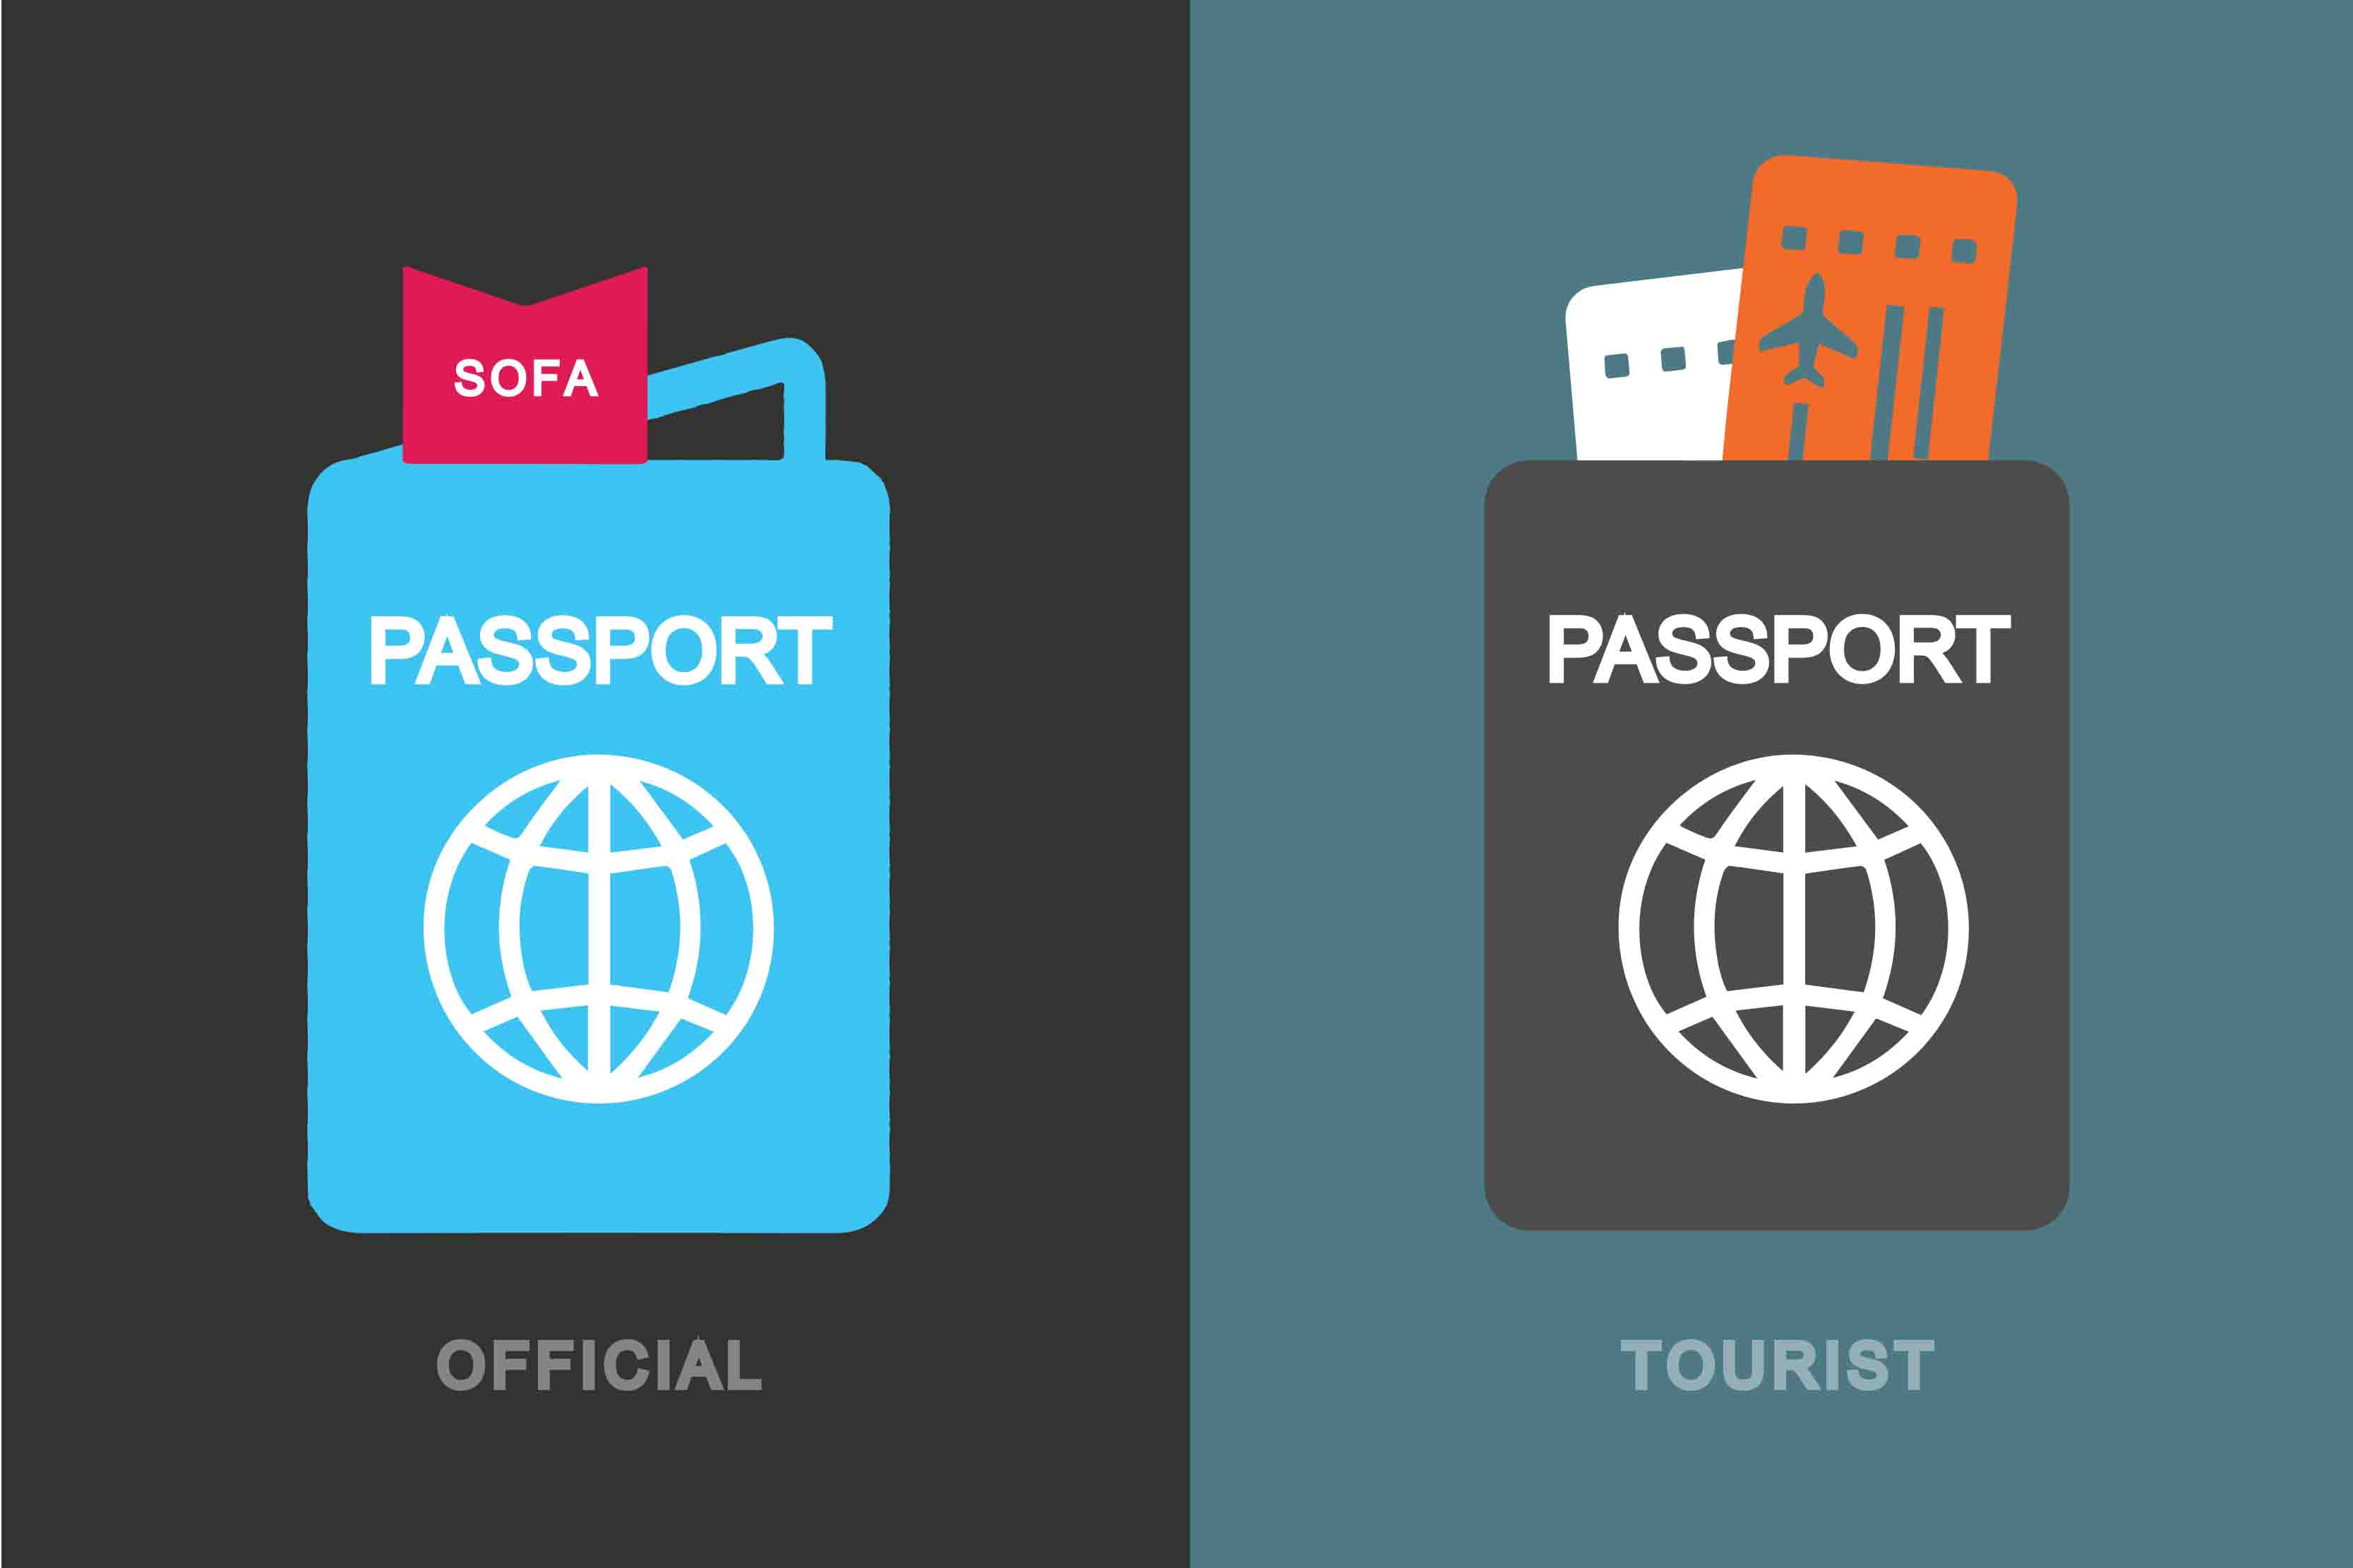 Official And Tourist Passports Why The Difference Matters